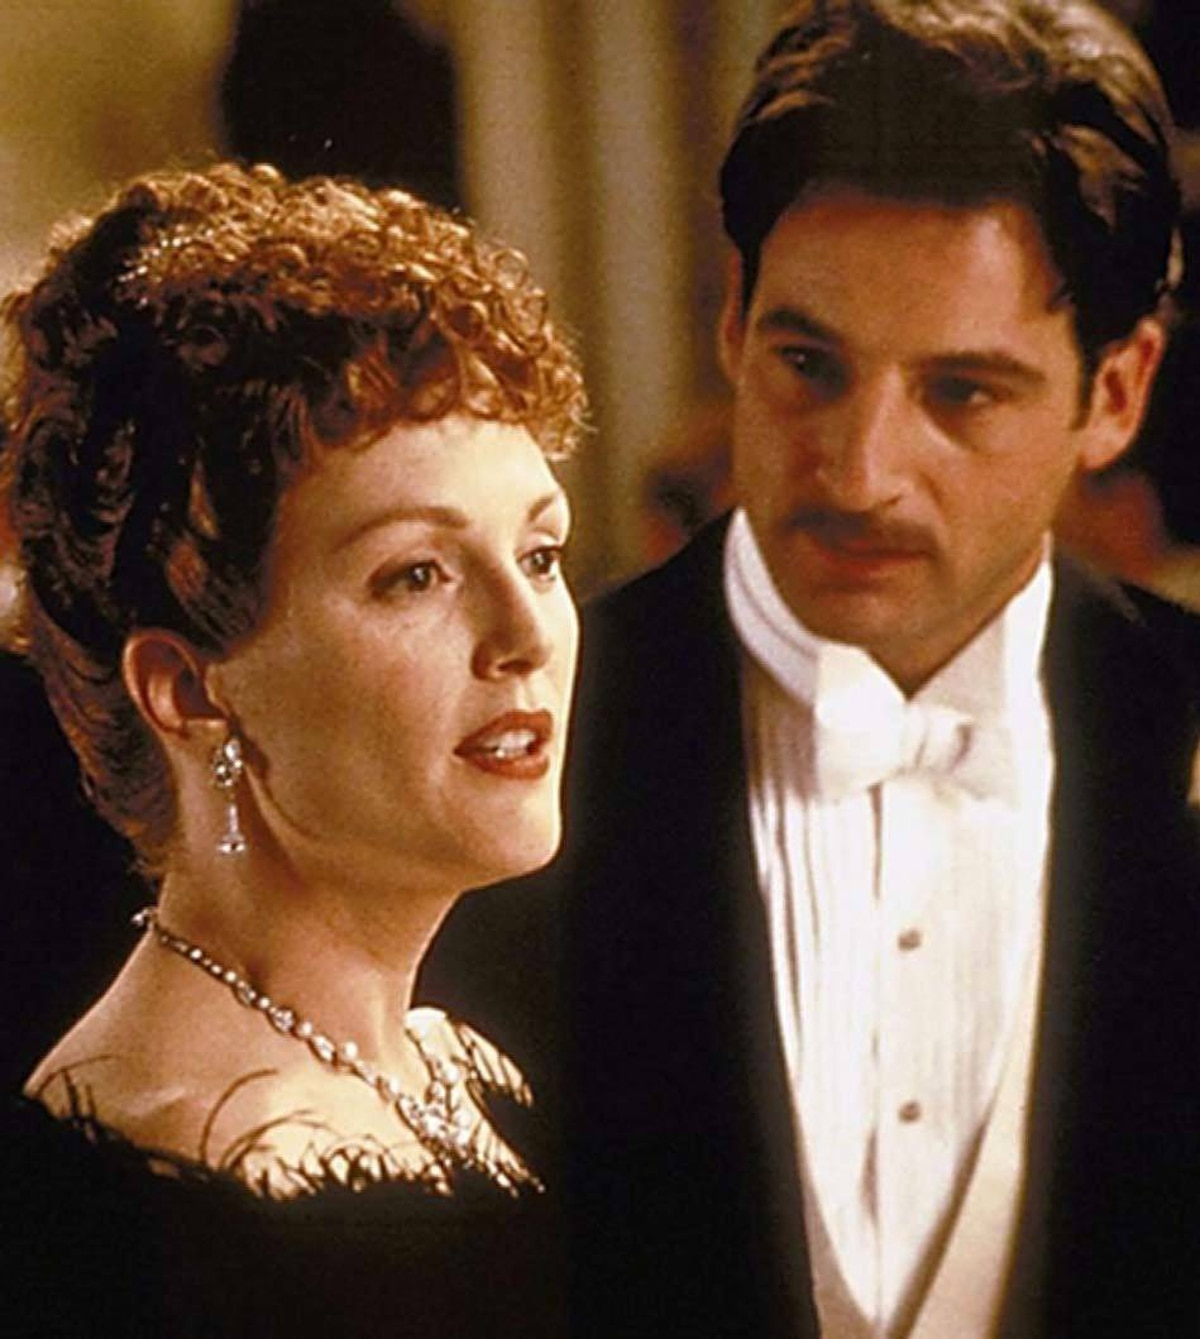 MOVIE An Ideal Husband Vision, midnight ET; 9 p.m. PT Based on the play by Oscar Wilde, this frothy drama was the closing film at the 1999 Cannes Film Festival, after which it went into limited theatrical release. Set in turn-of-the-century London, it stars Jeremy Northam as Sir Robert Chiltern, a respected member of Parliament with a loving and supportive wife (Cate Blanchett) and a spotless reputation. Enter the devious Mrs. Chevely (Julianne Moore), who threatens to reveal a dark secret from Sir Robert's past that could derail his privileged existence. Mrs. Chevely will destroy the evidence of his misdeed, but only if he supports a controversial government bill. With his political career and marriage at stake, Sir Robert calls in his wily friend Lord Goring (Rupert Everett).